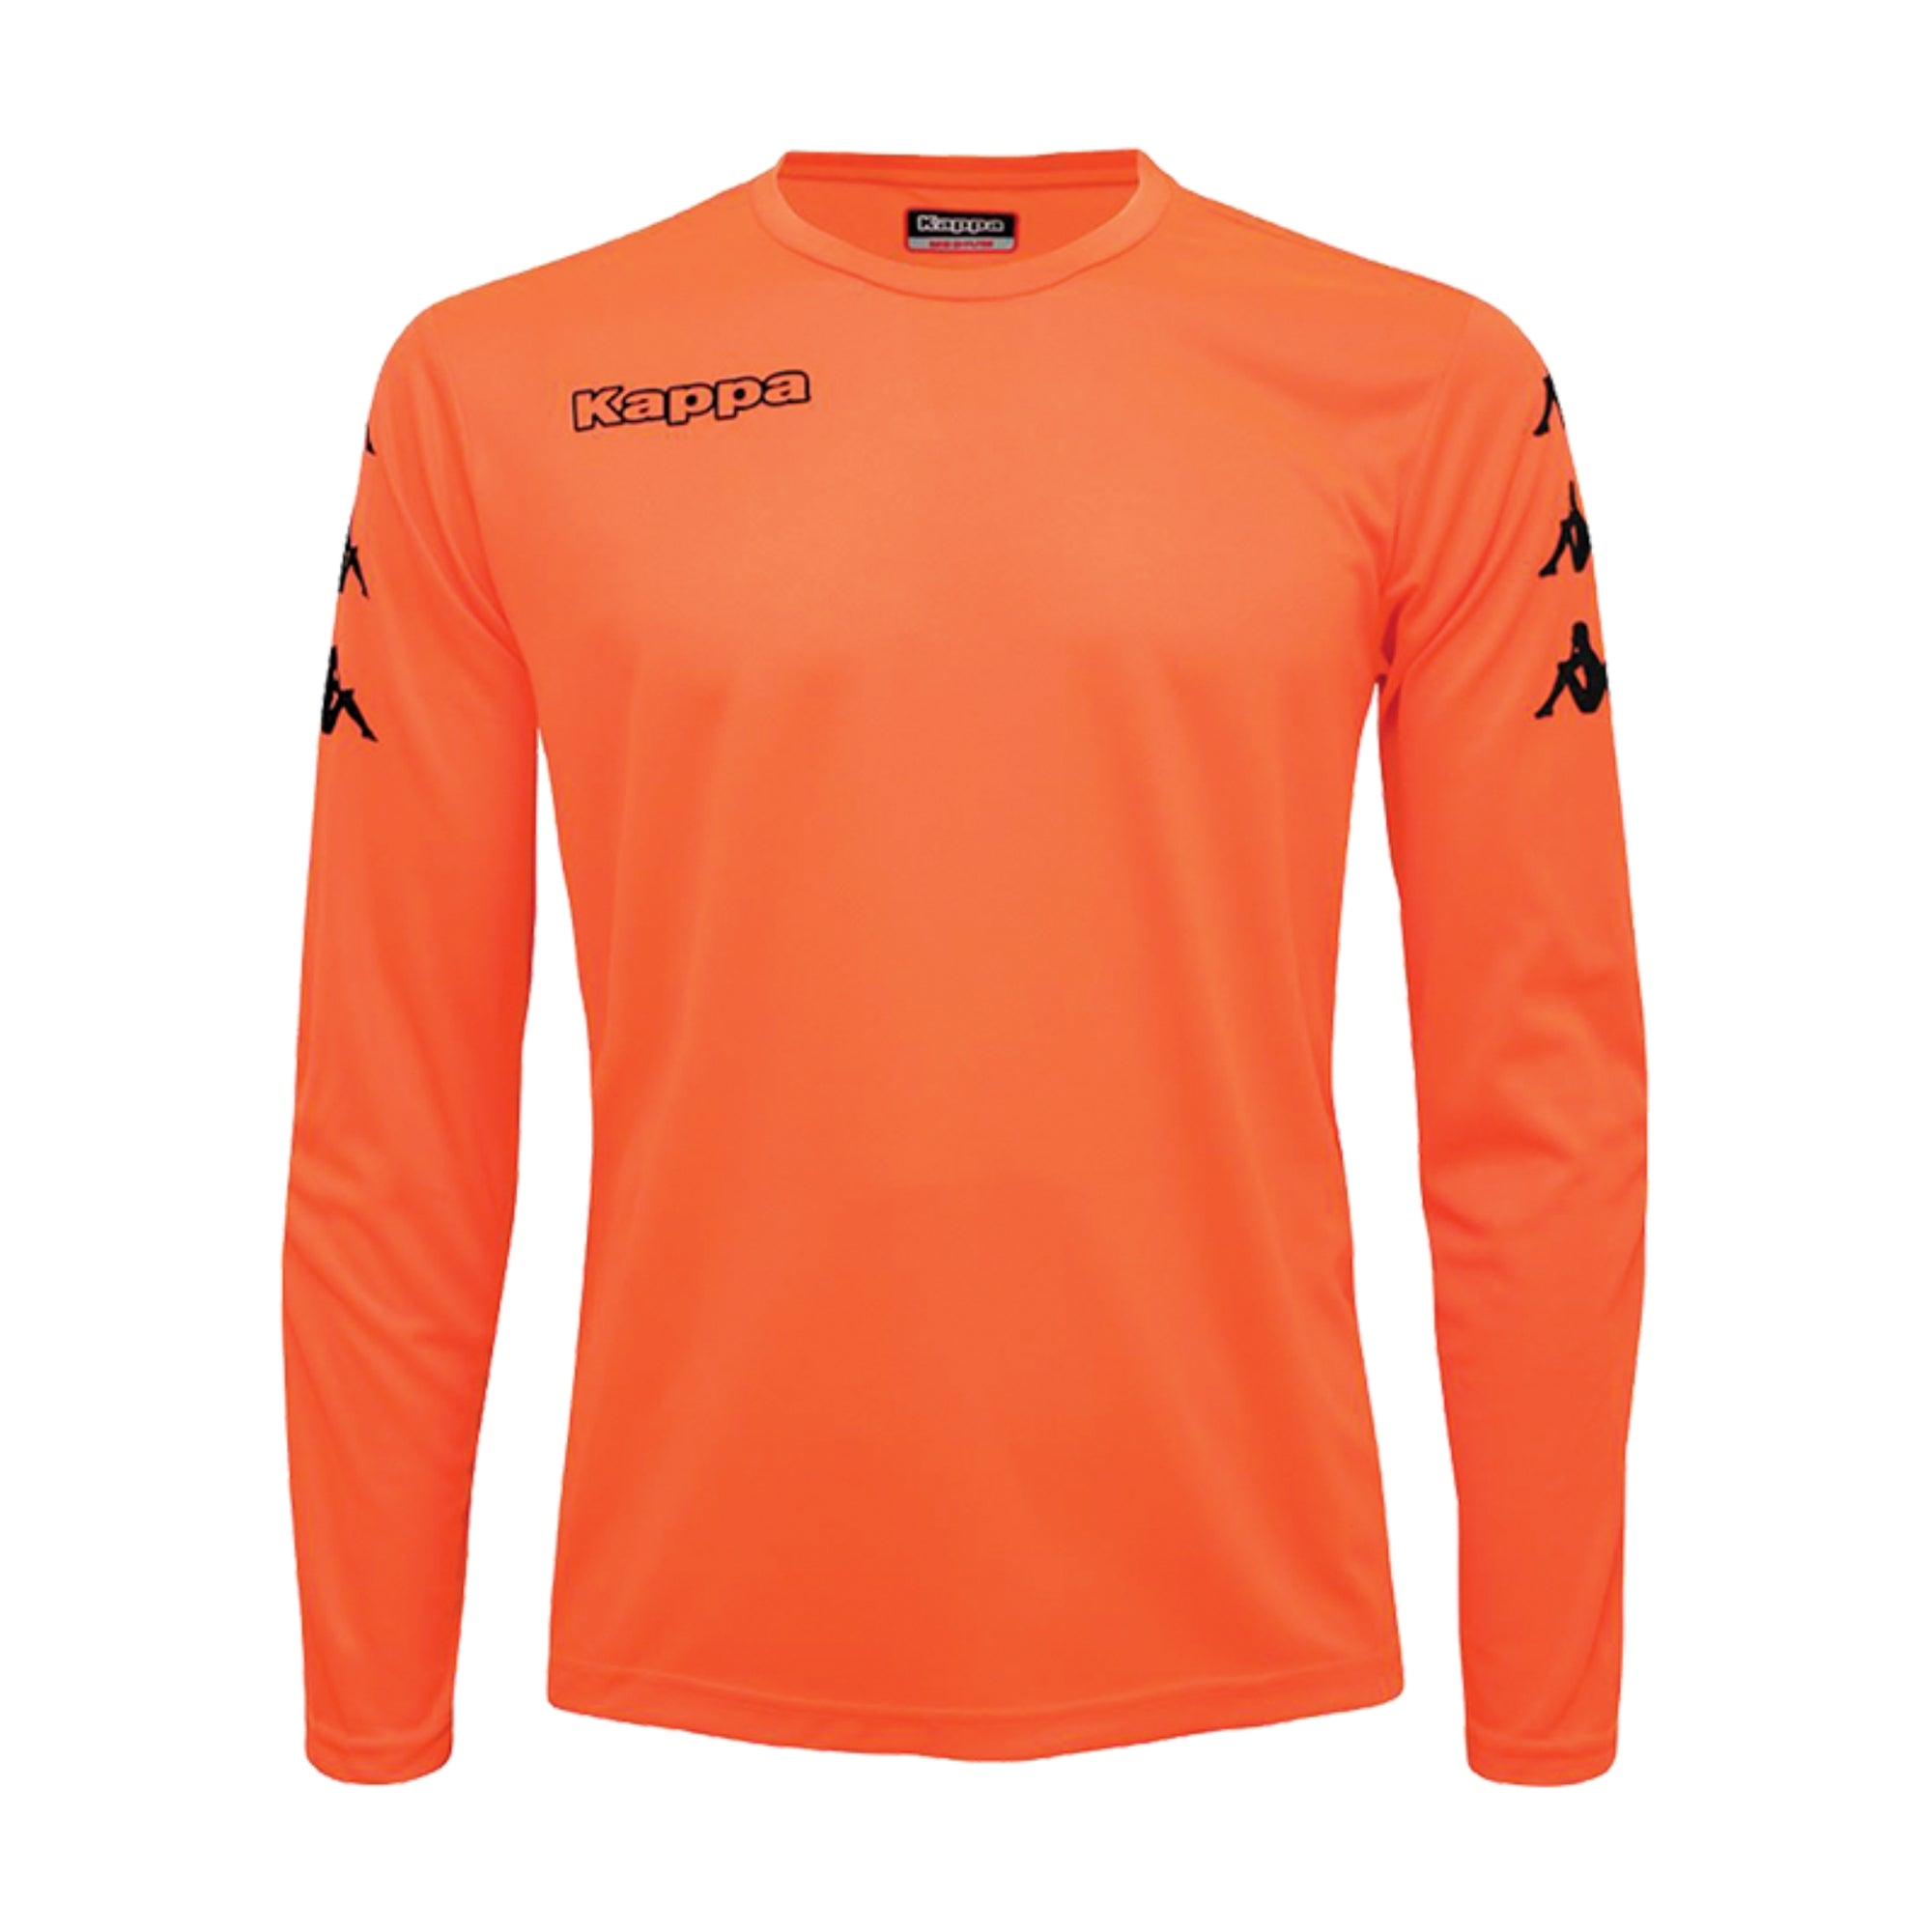 Kappa goalkeeper shirt in red fluo with black printed Omini banda on the sleeves